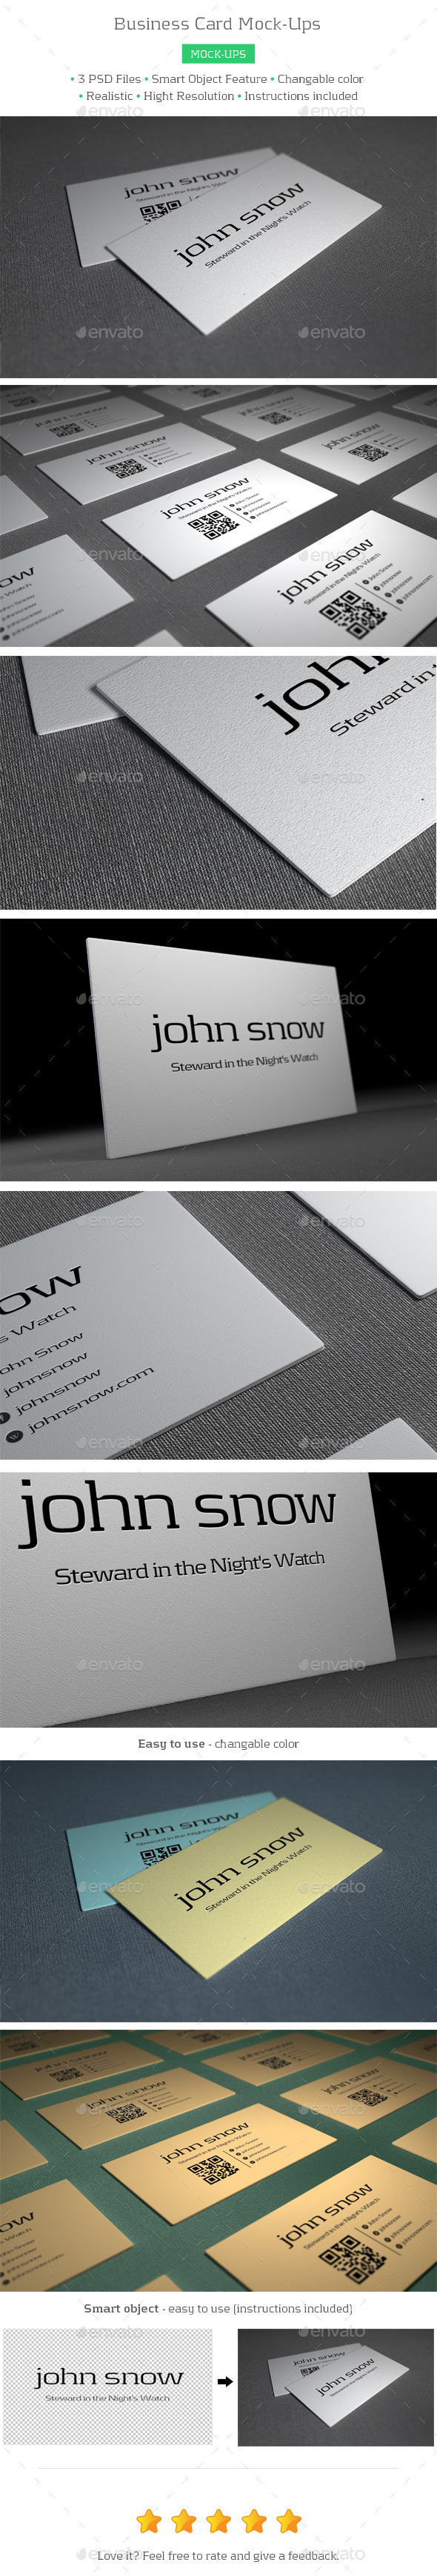 GraphicRiver Business Card Mock-Ups 8832009